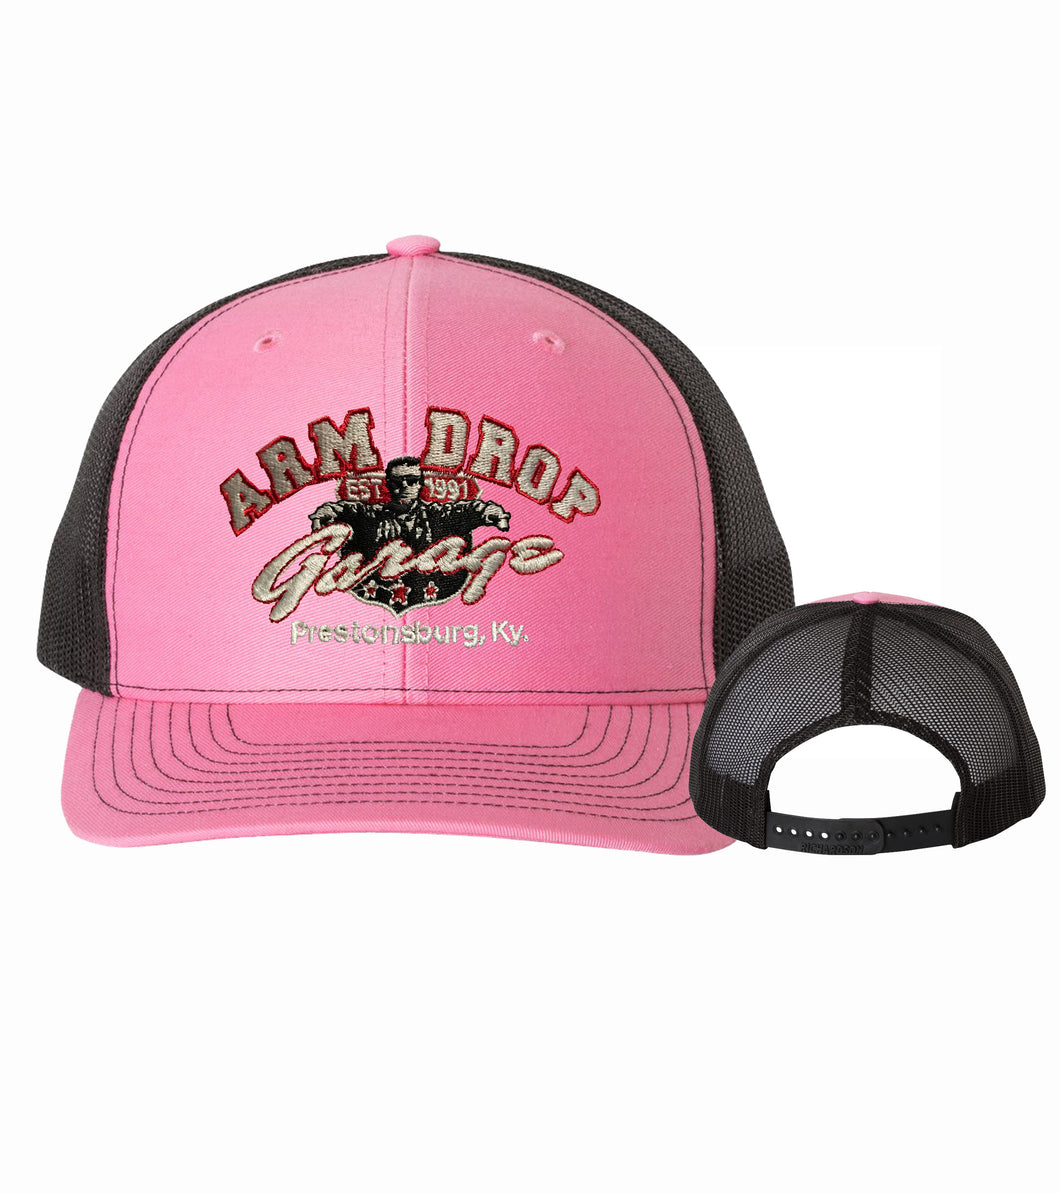 Hot Pink/Black Arm Drop Garage Structured Trucker Cap